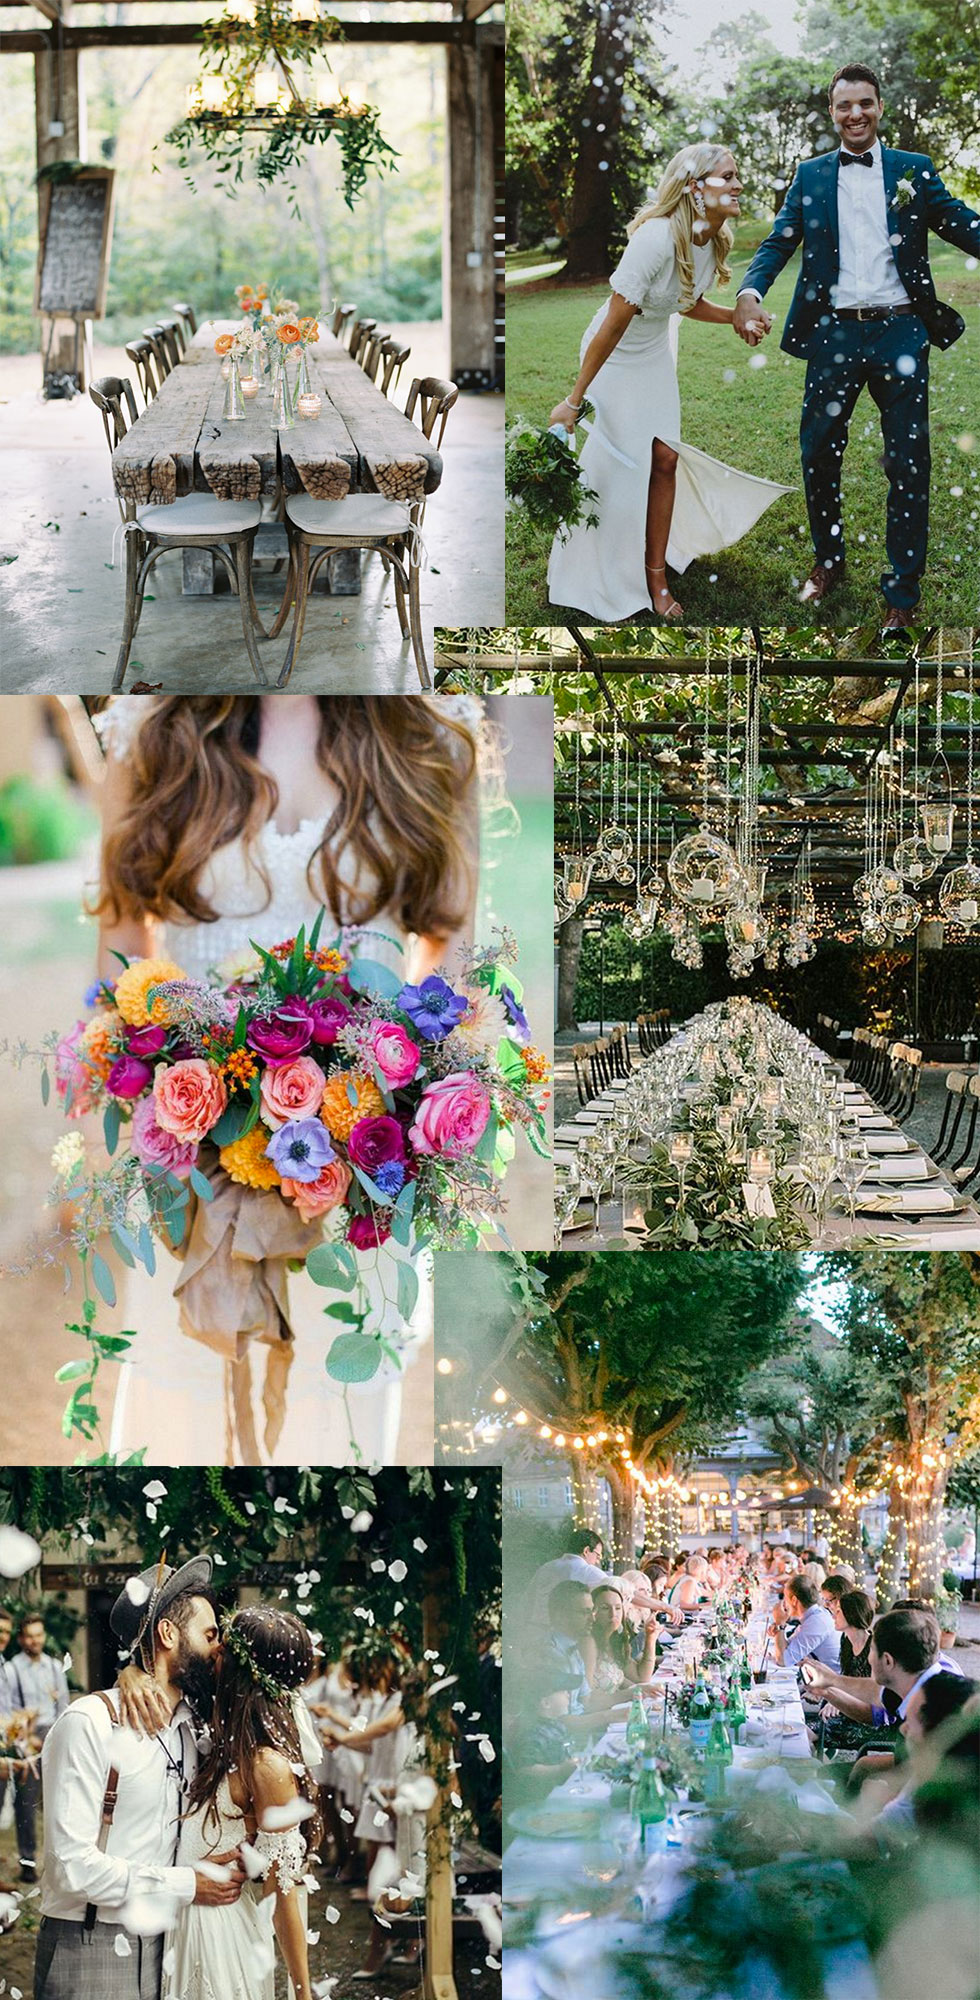 wedding-inspo-bohemian-outdoor-barn-pinterest-brollop